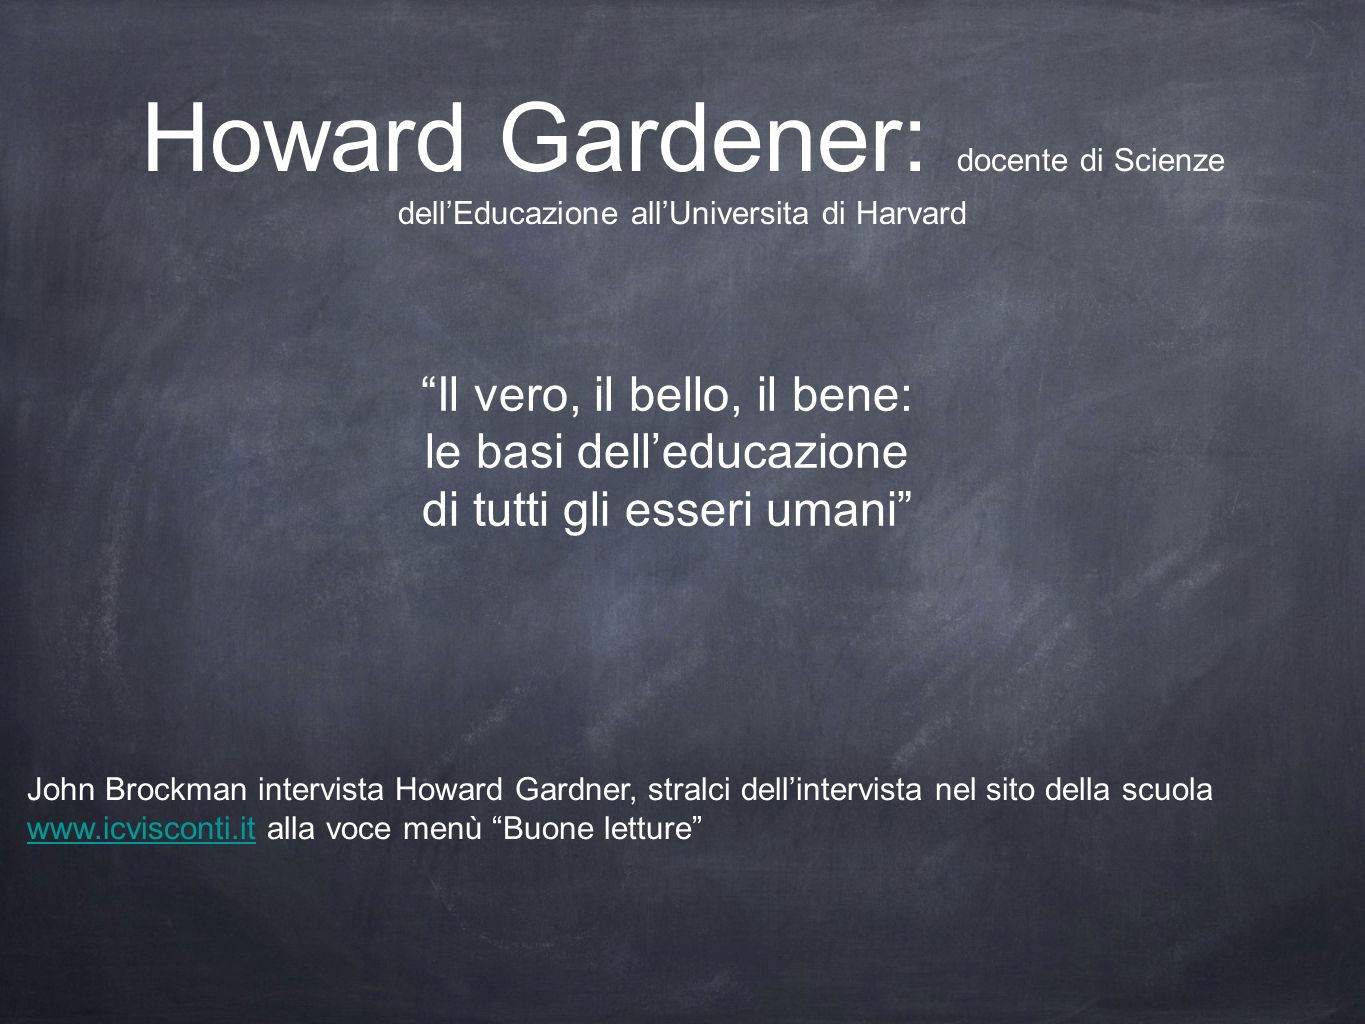 Howard Gardener: docente di Scienze dell'Educazione all'Universita di Harvard